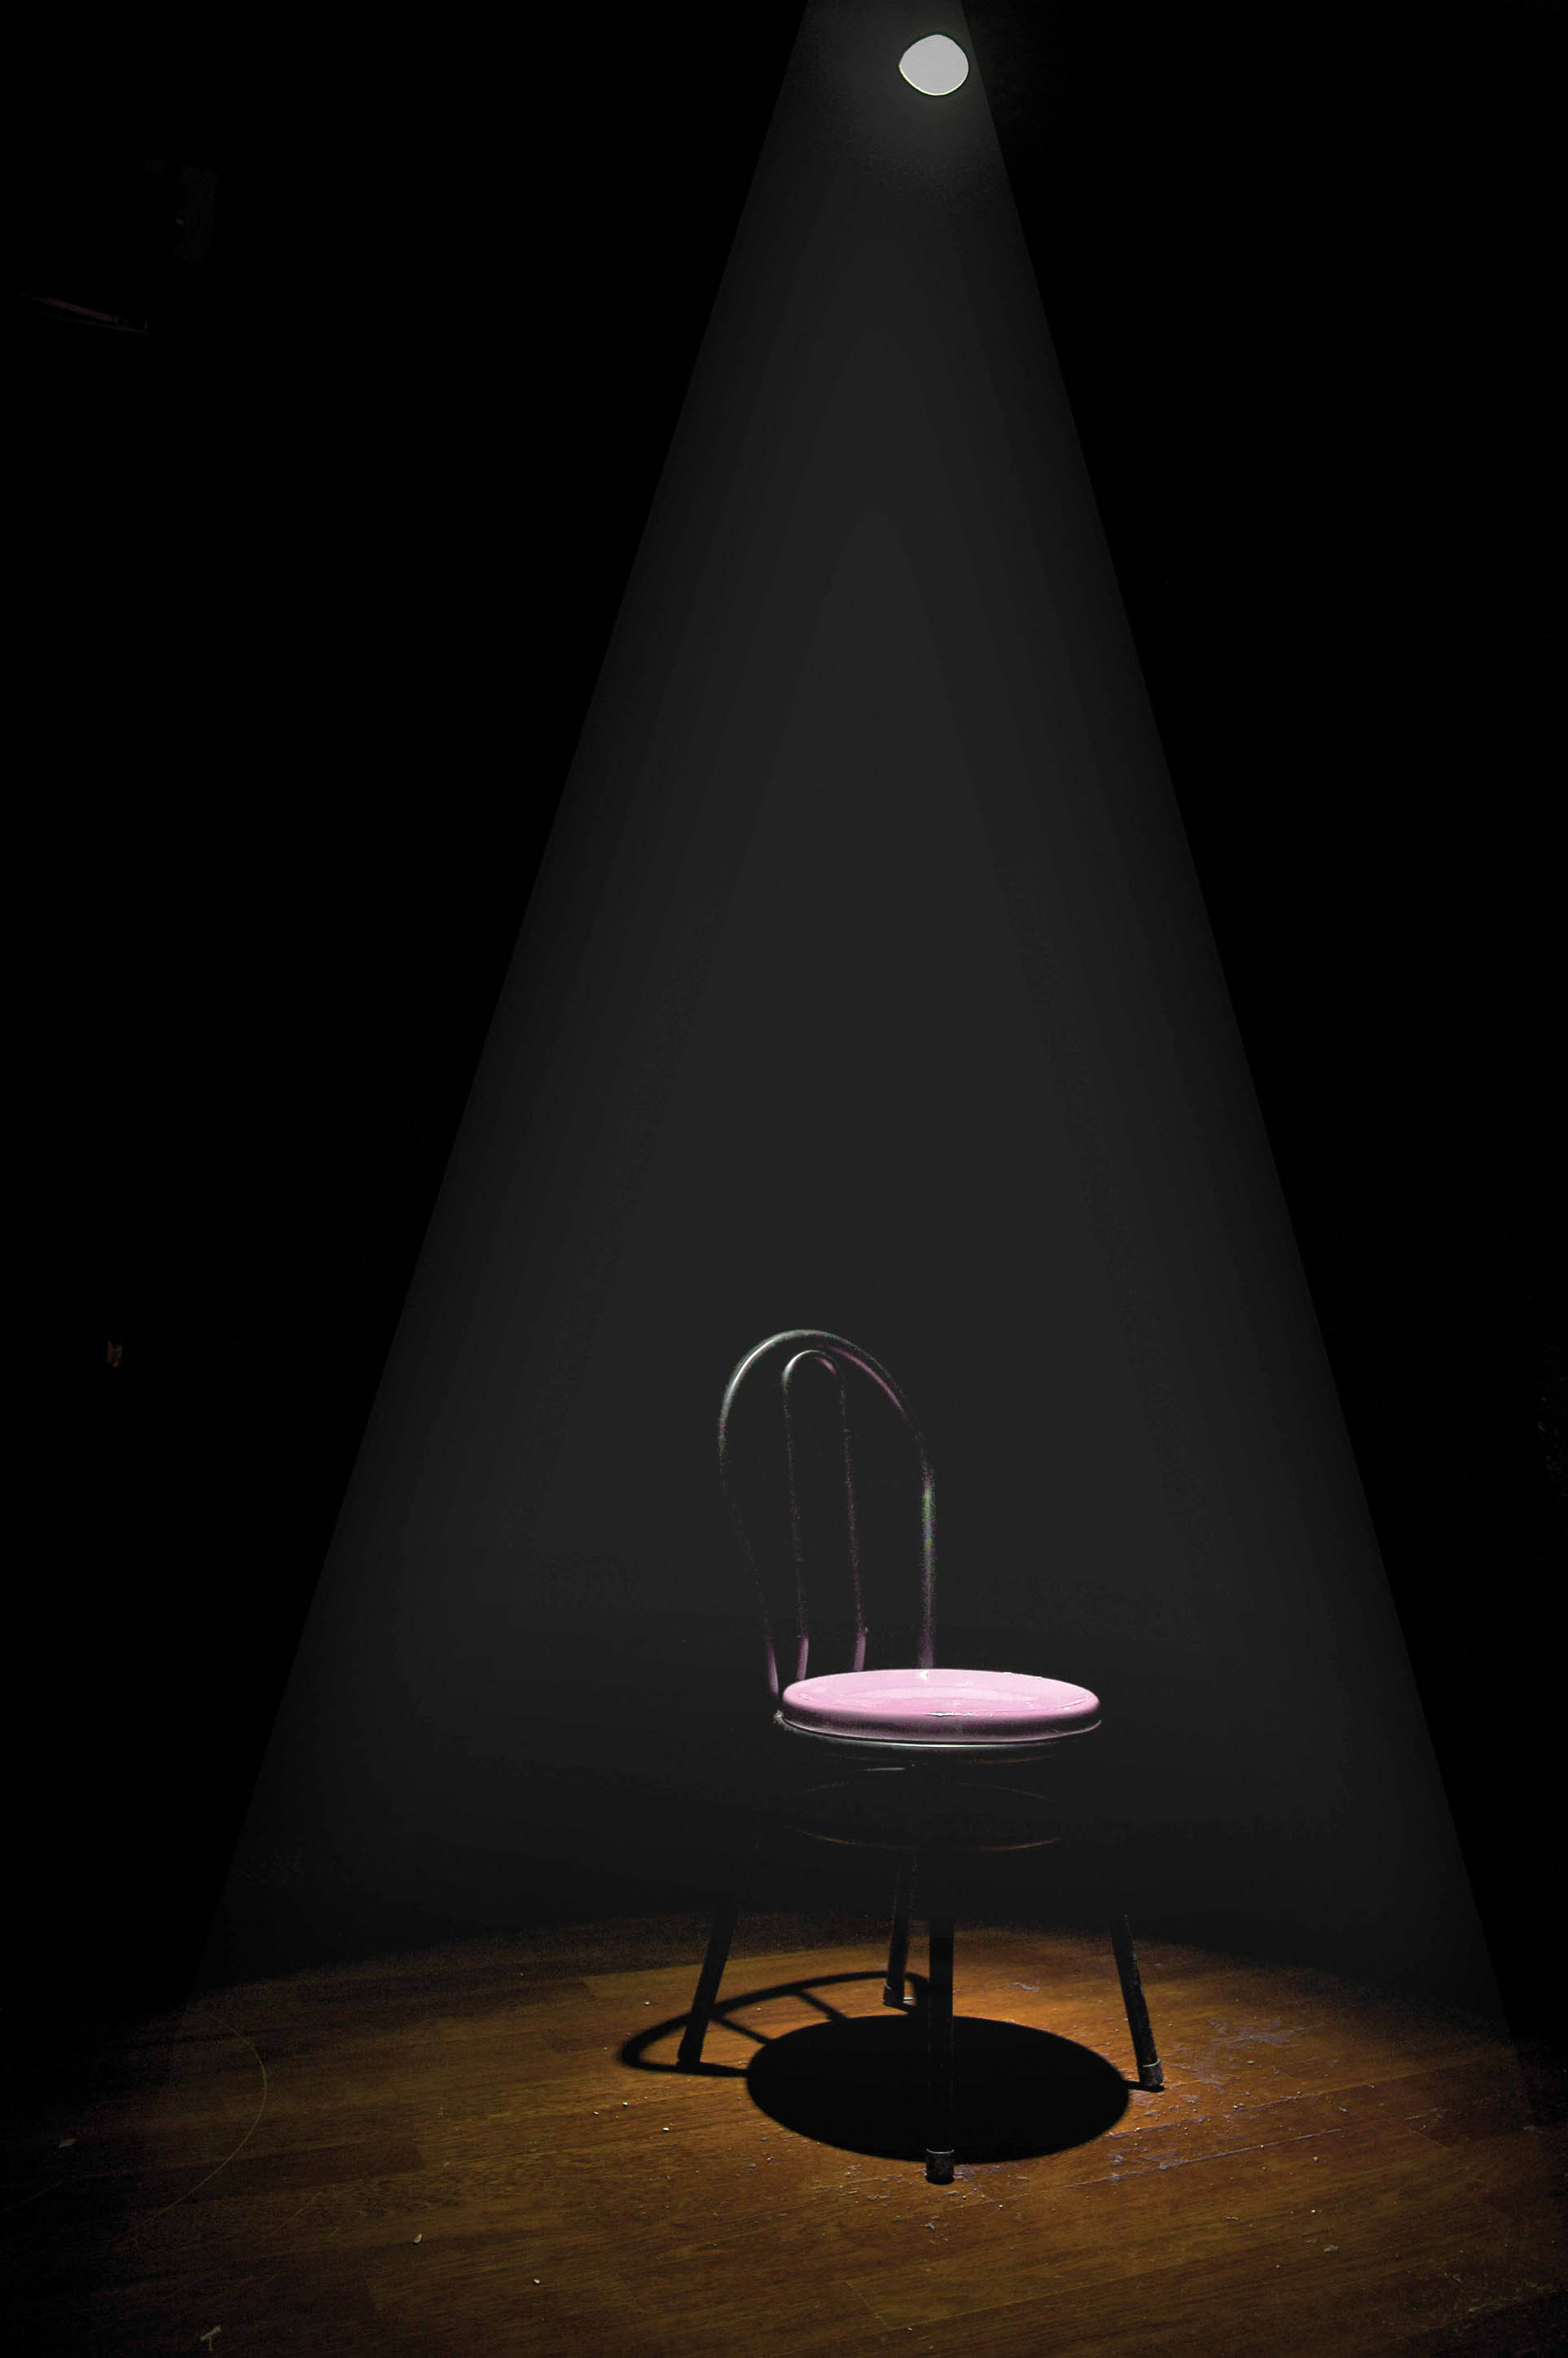 HH Lim, Me myself and I, Dark room with a chair and spot light, dimensions variable, 2018 (2)